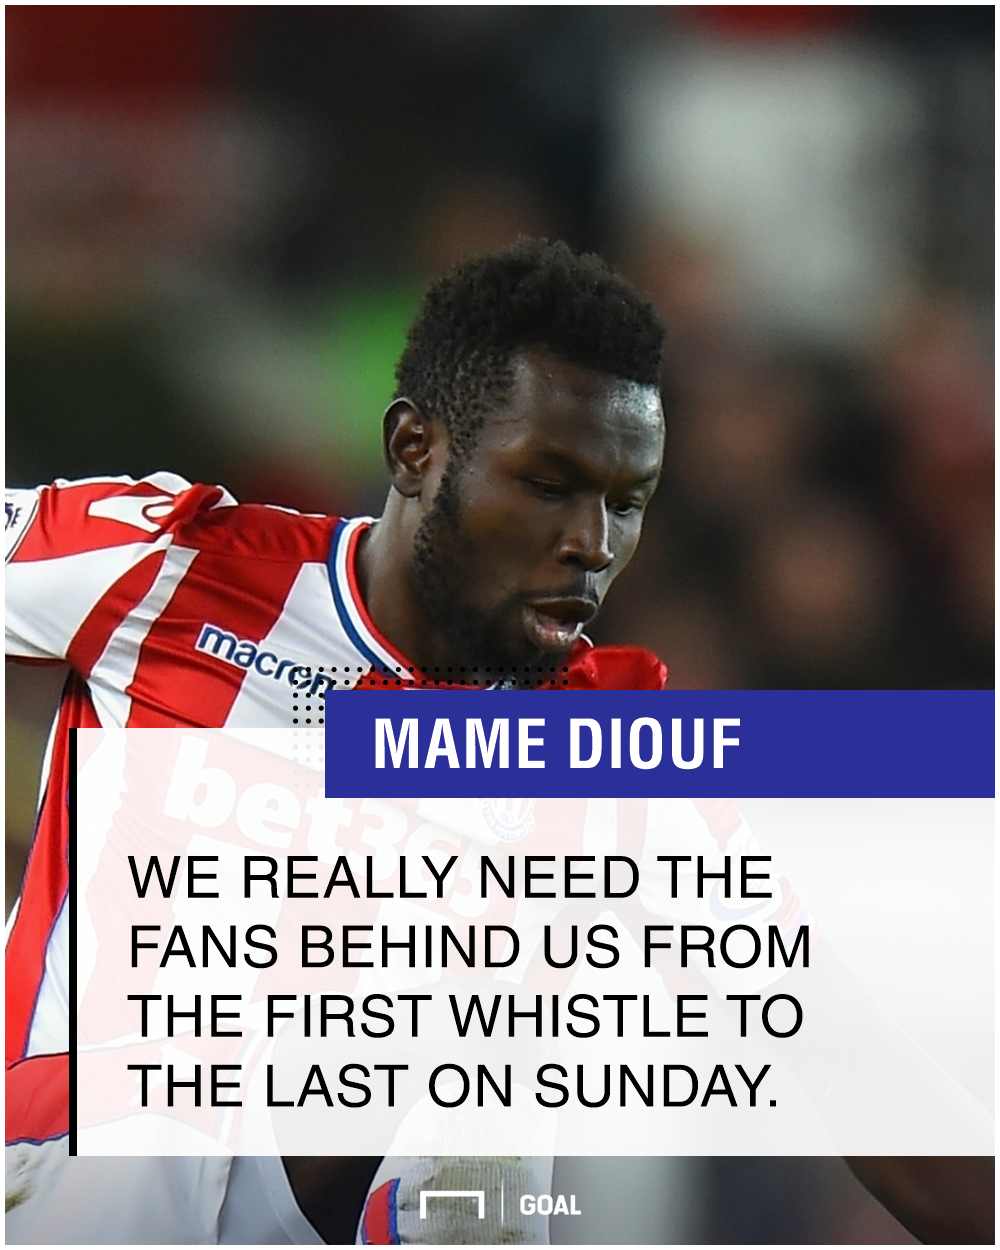 Mame Diouf ps